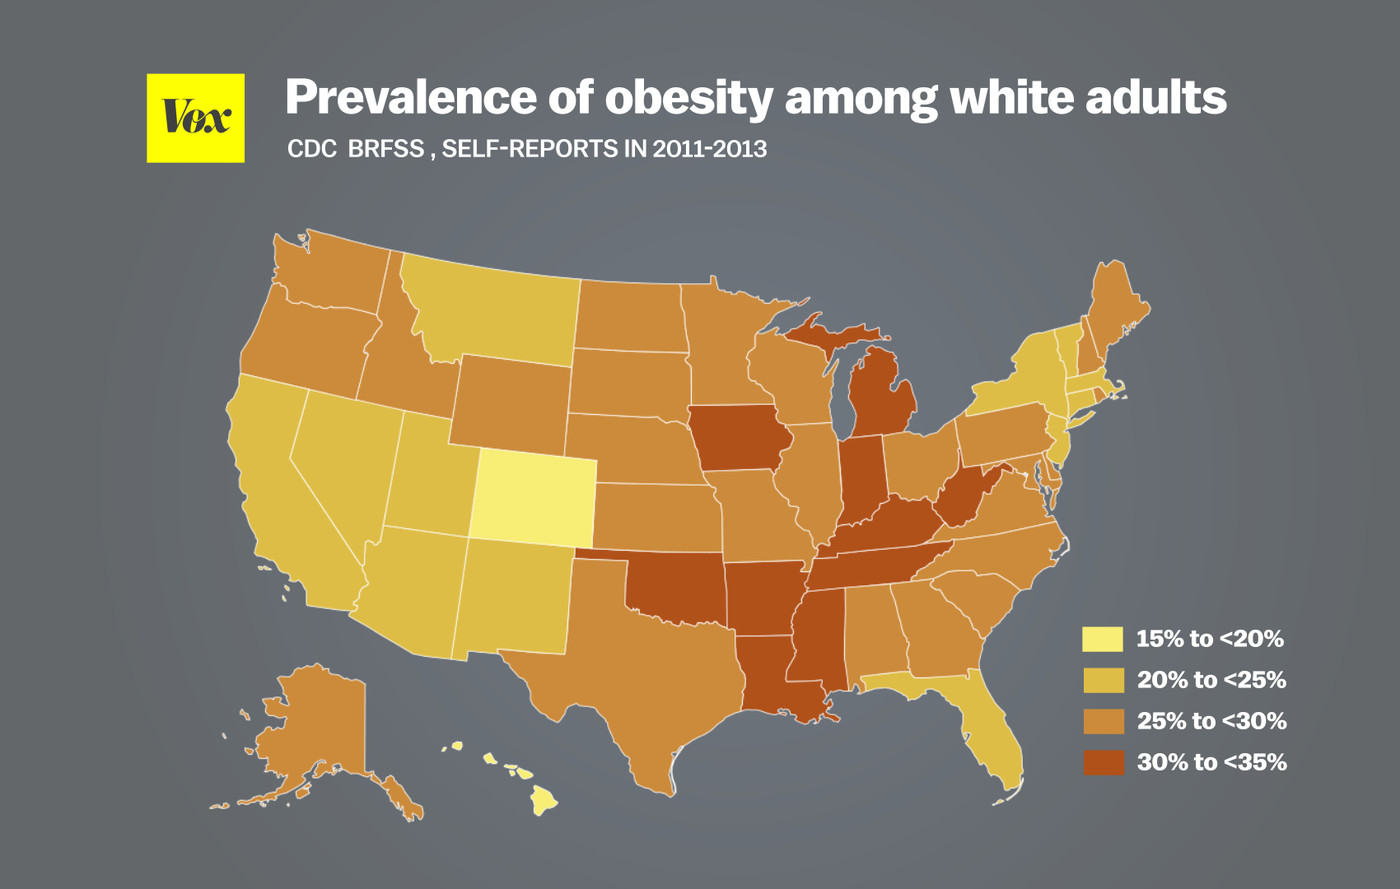 Everything you wanted to know about obesity and ... on obesity death, obesity in canada, obesity statistics in america, obesity rates in america 2013, obesity states, obesity in us 2012, diabetes trends map, food trends map, flu trends map,